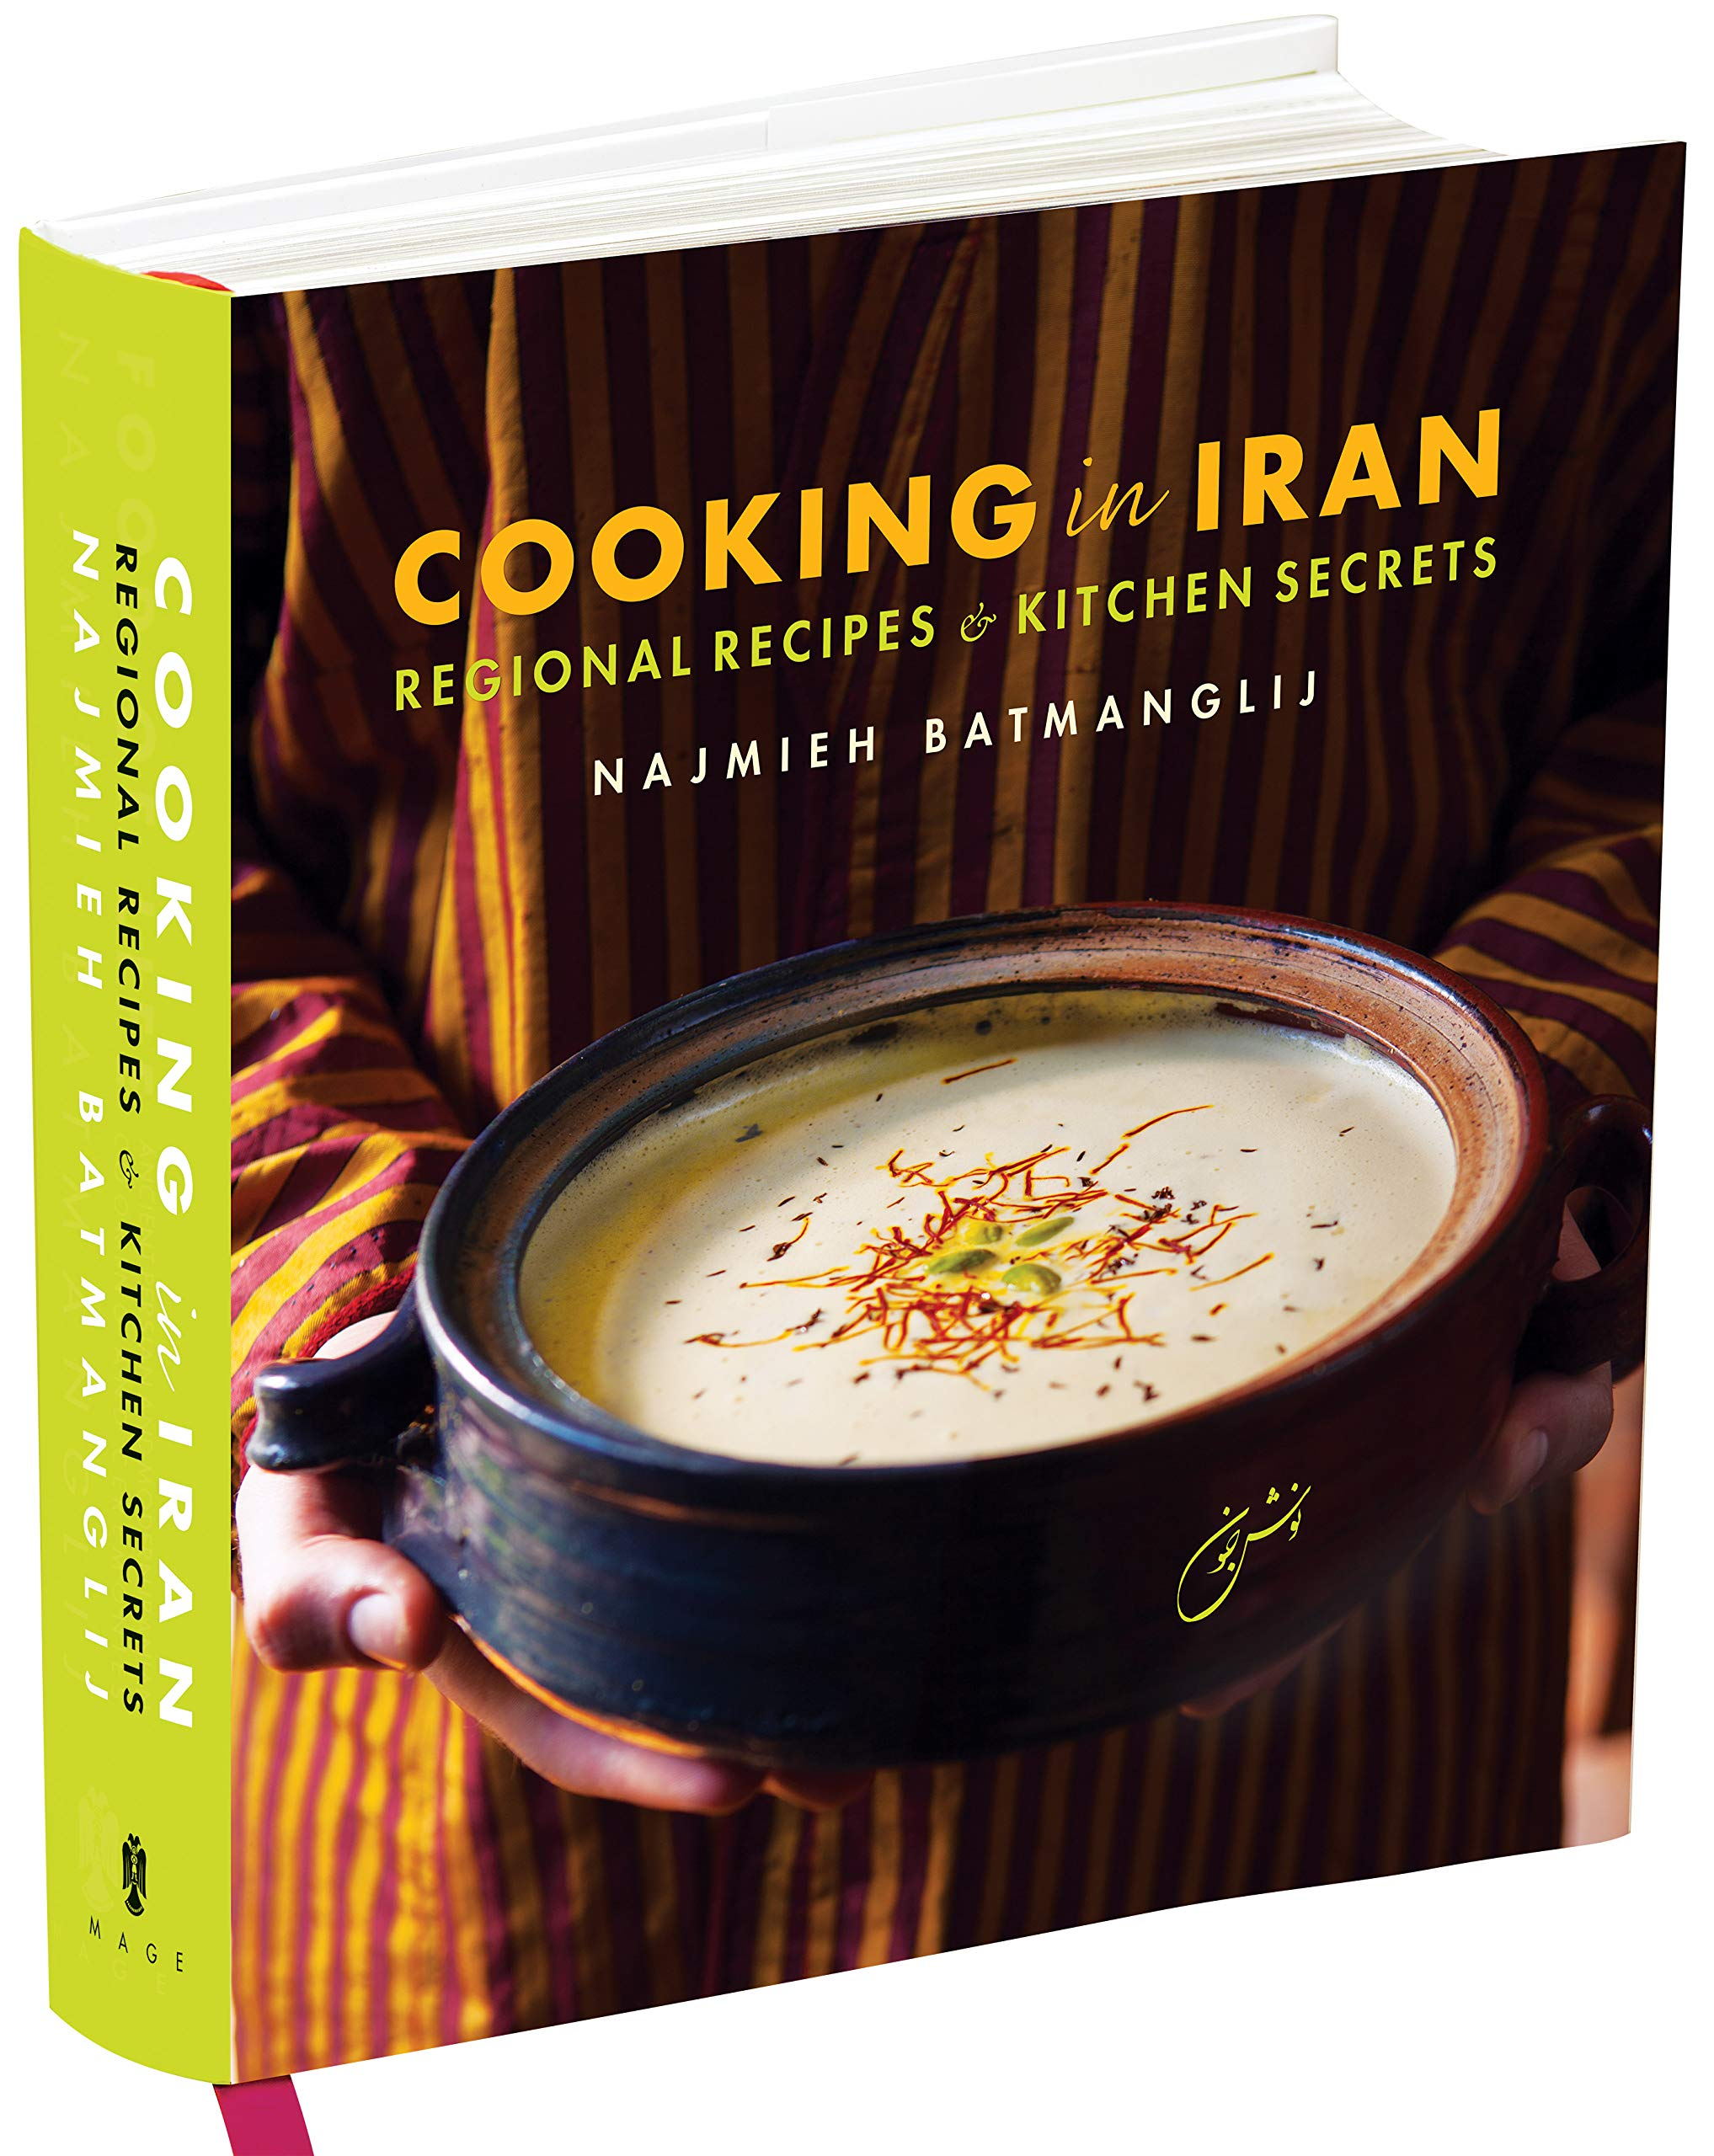 Classic recipes and small secrets of cooking